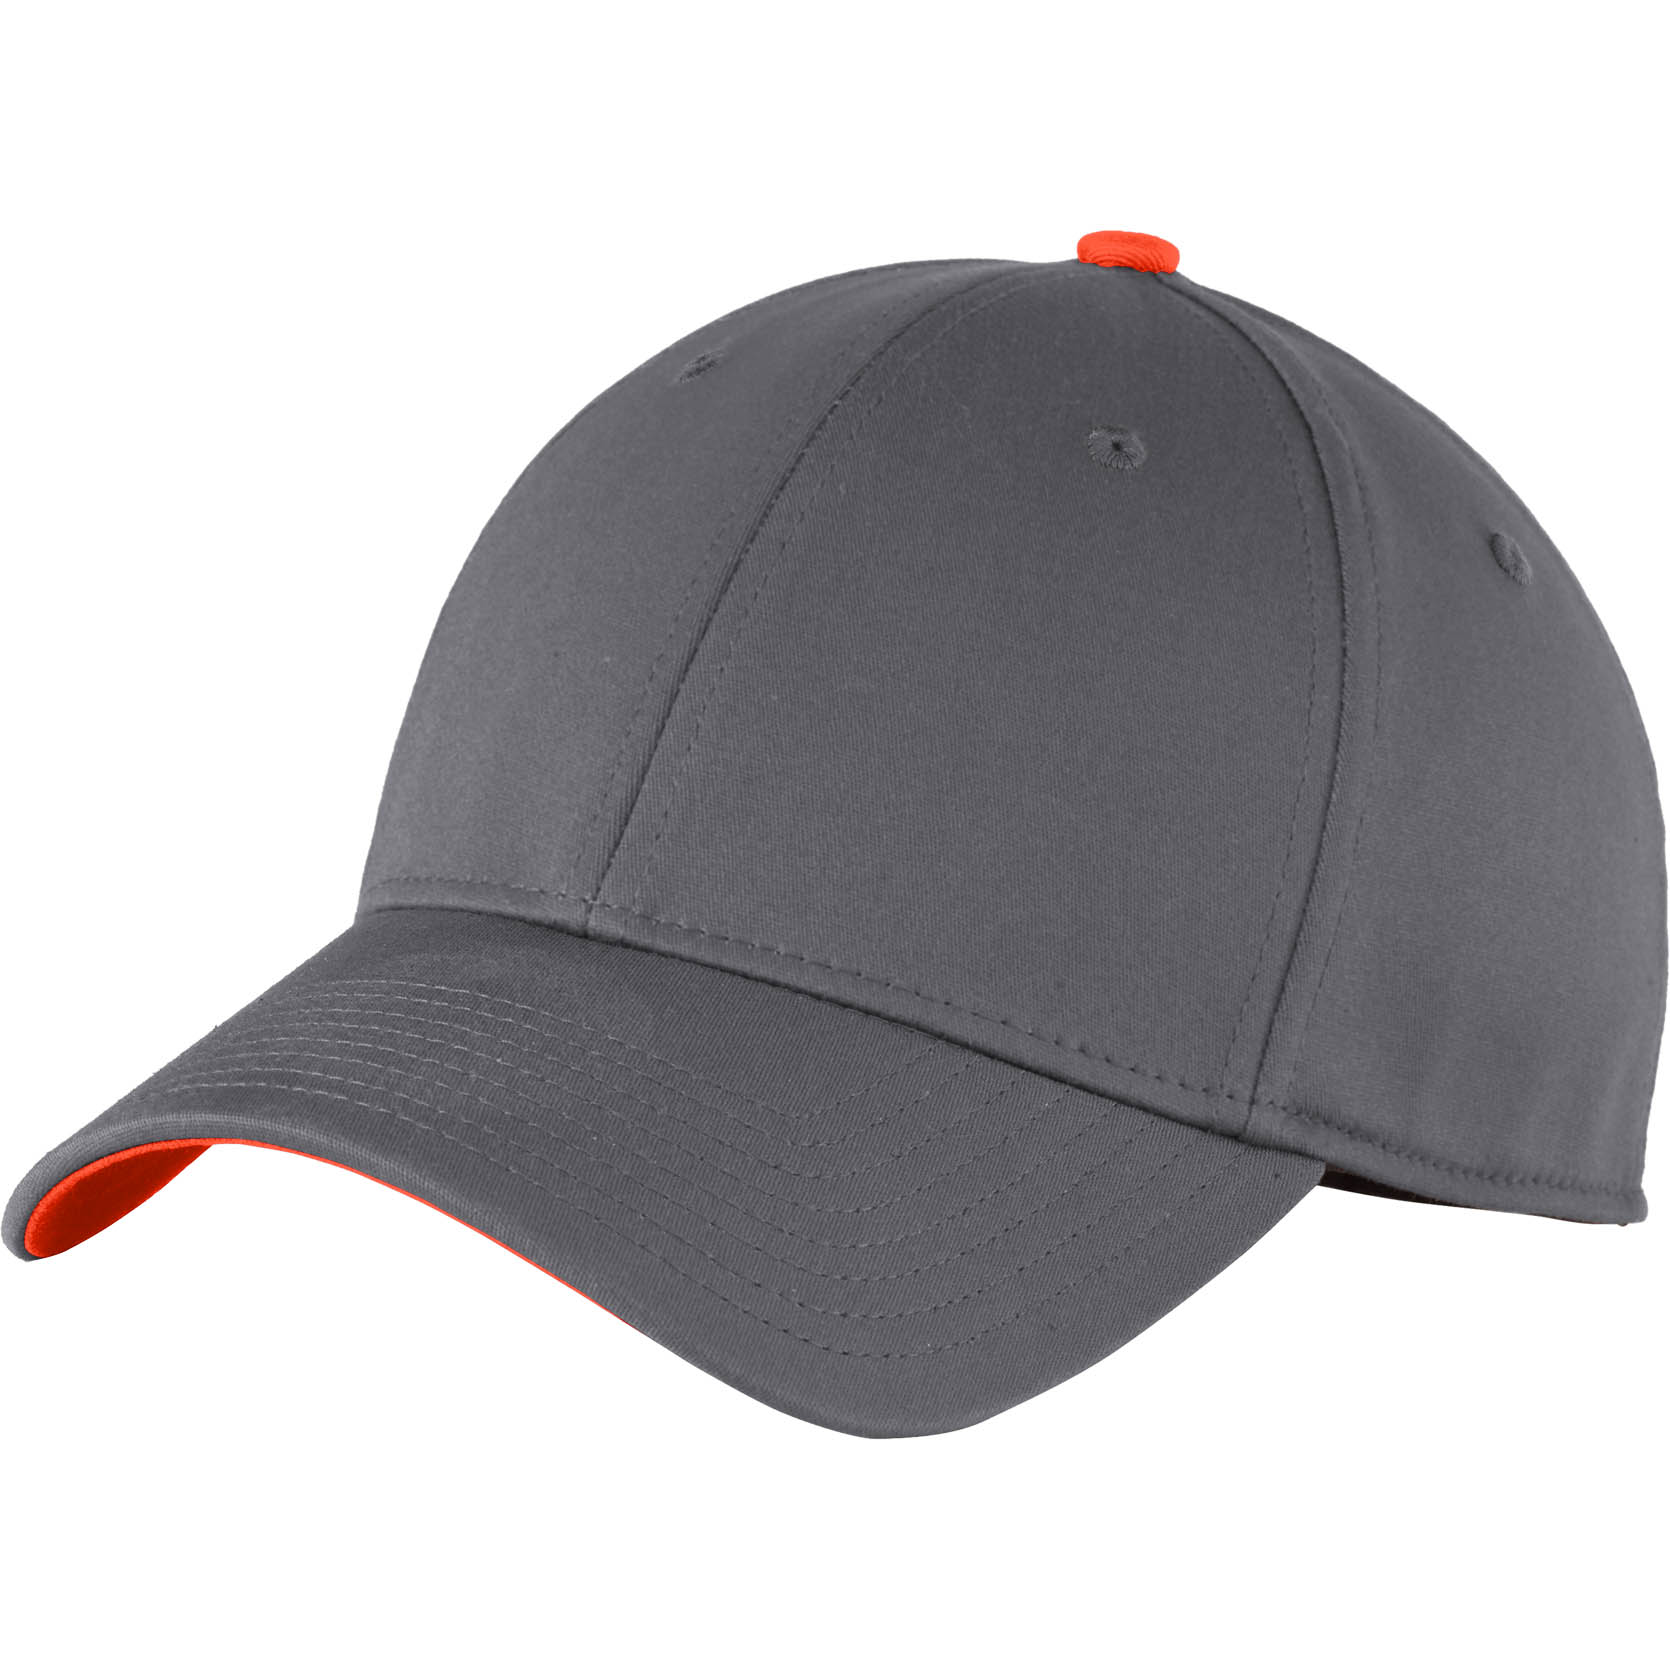 New Era NE1020 Stretch Mesh Cap - Charcoal Charcoal  aa6899b3c8ba